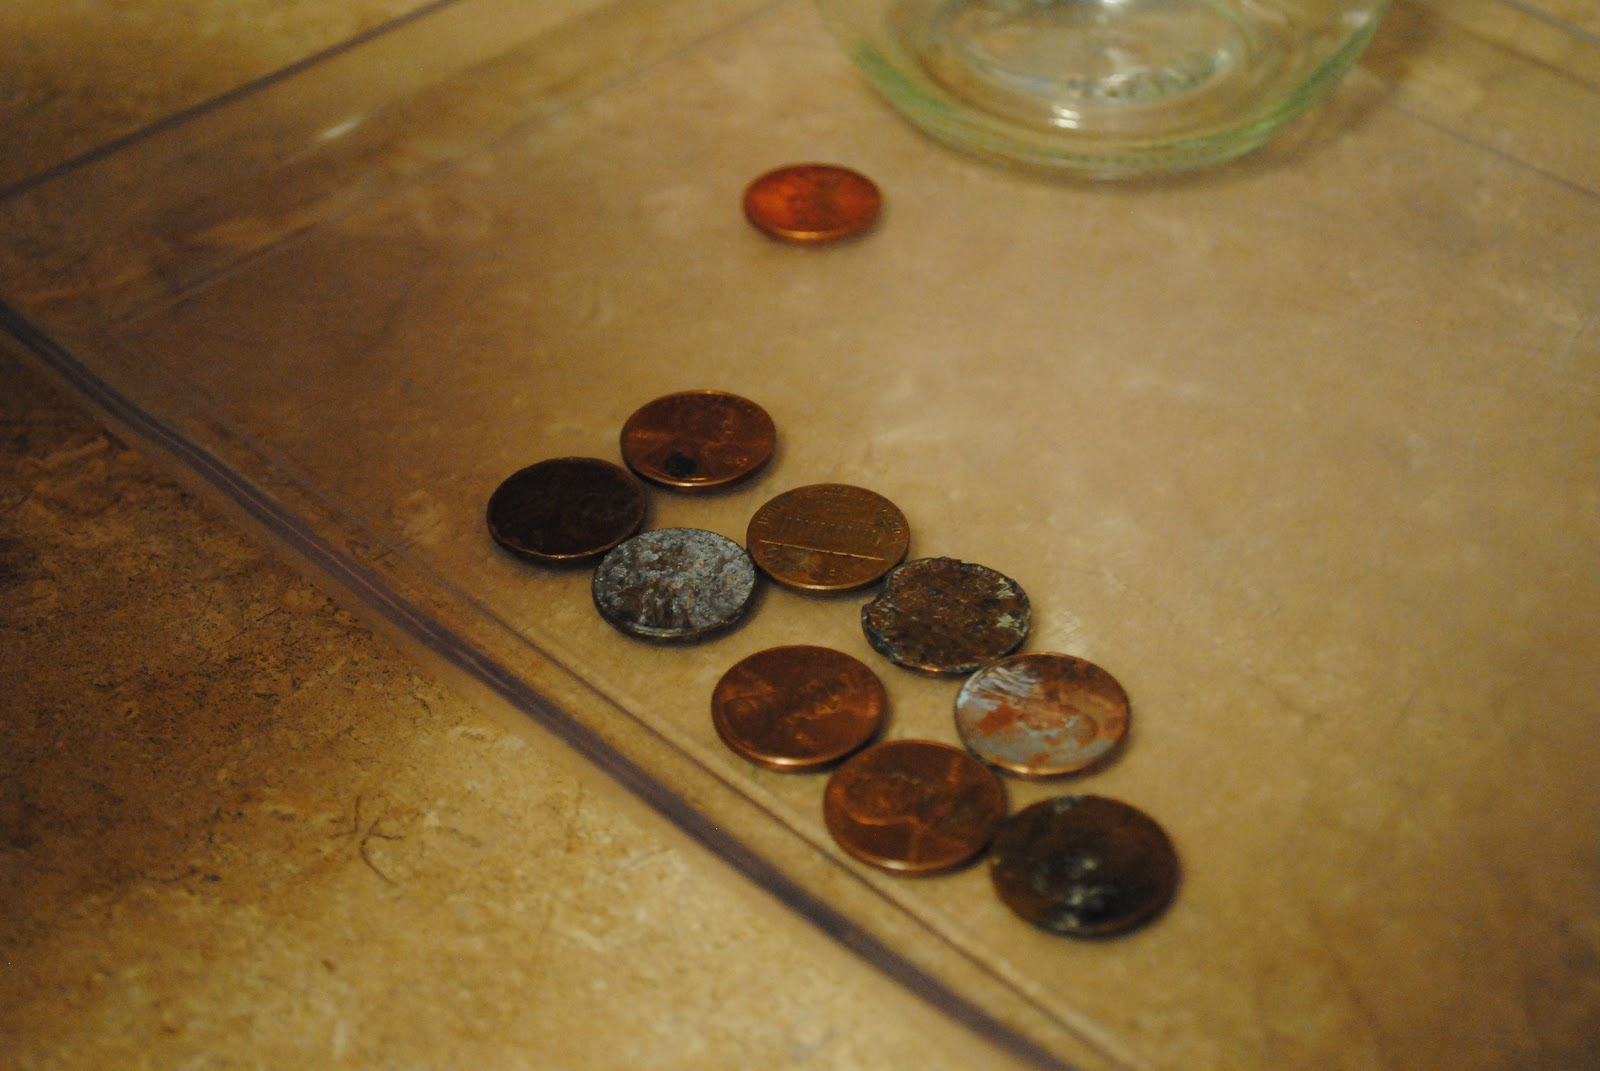 Found nine dirty pennies foreground and one clean penny background